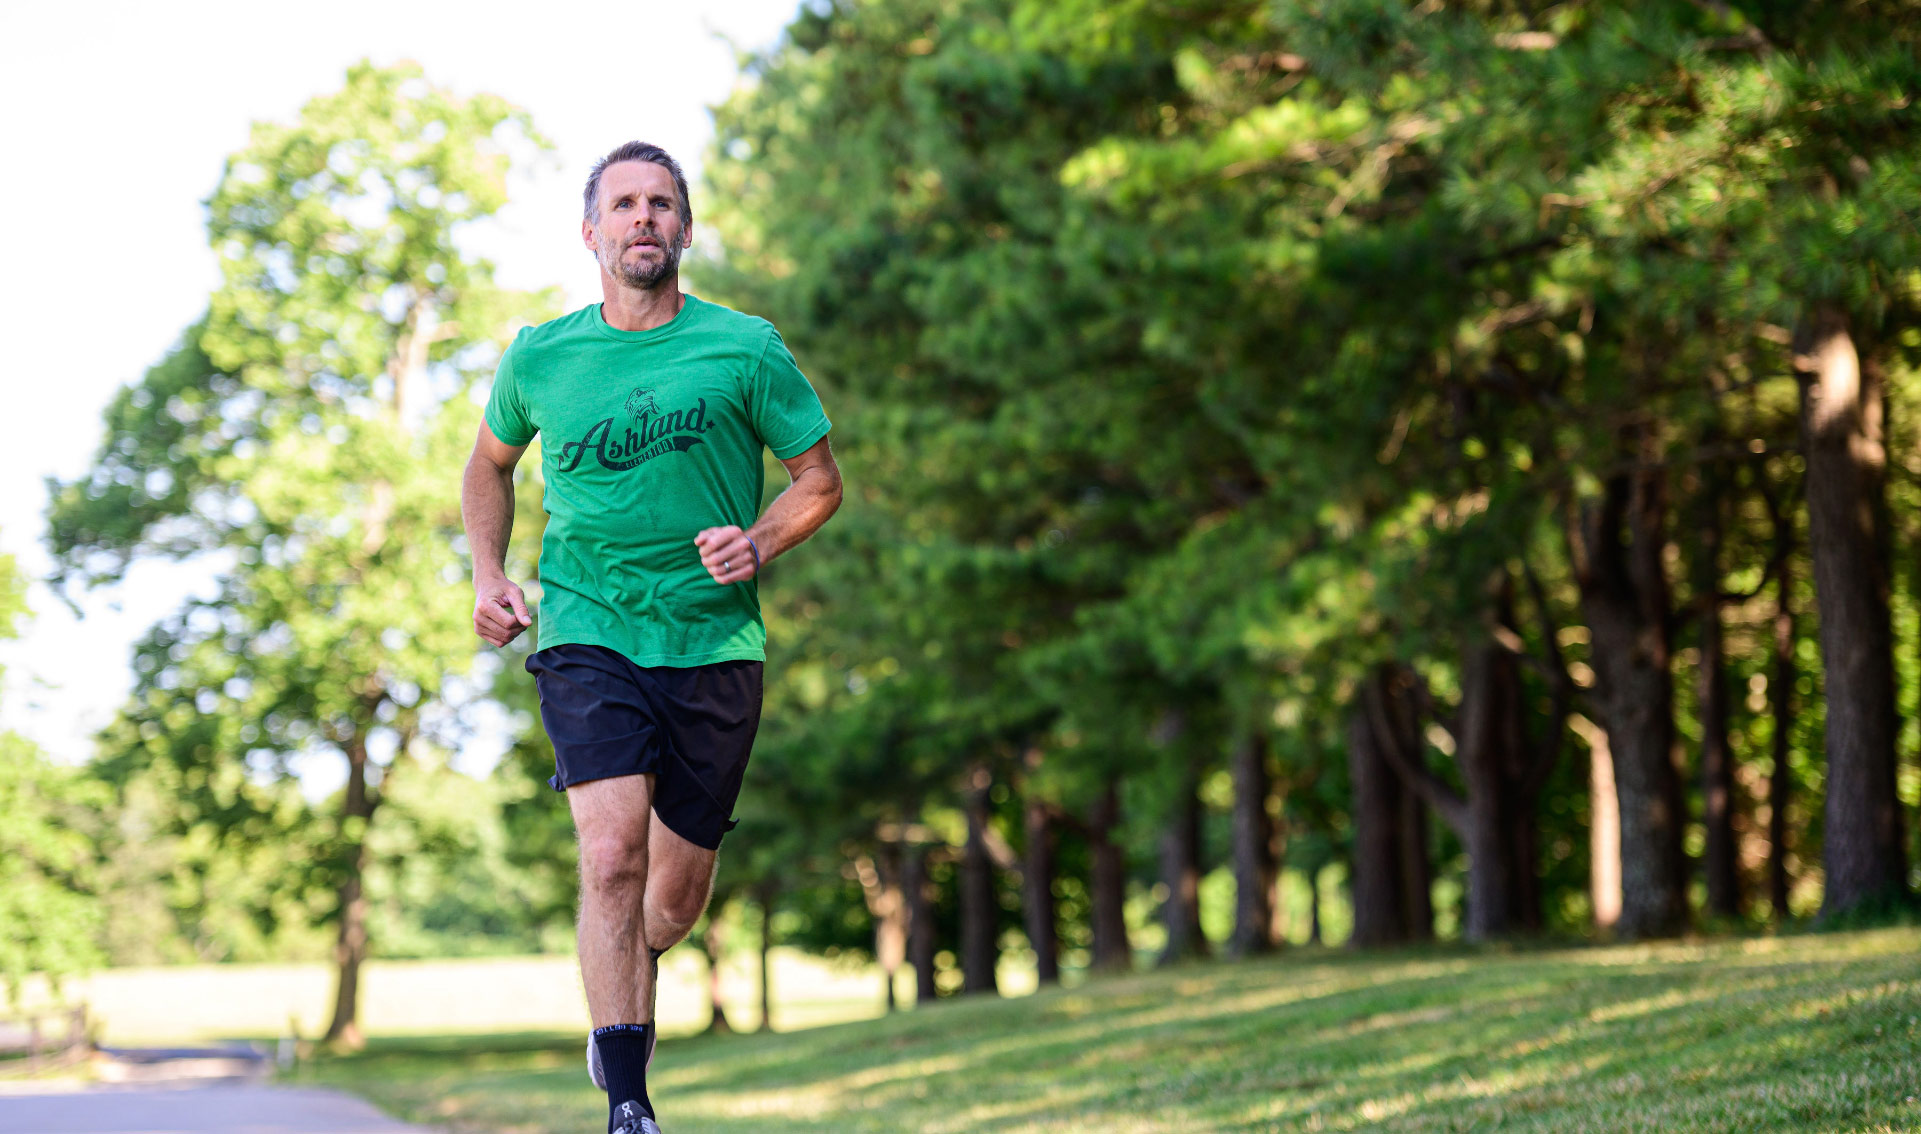 Ryan runs along a road next to a clump of trees. He is wearing a green shirt and black shorts.